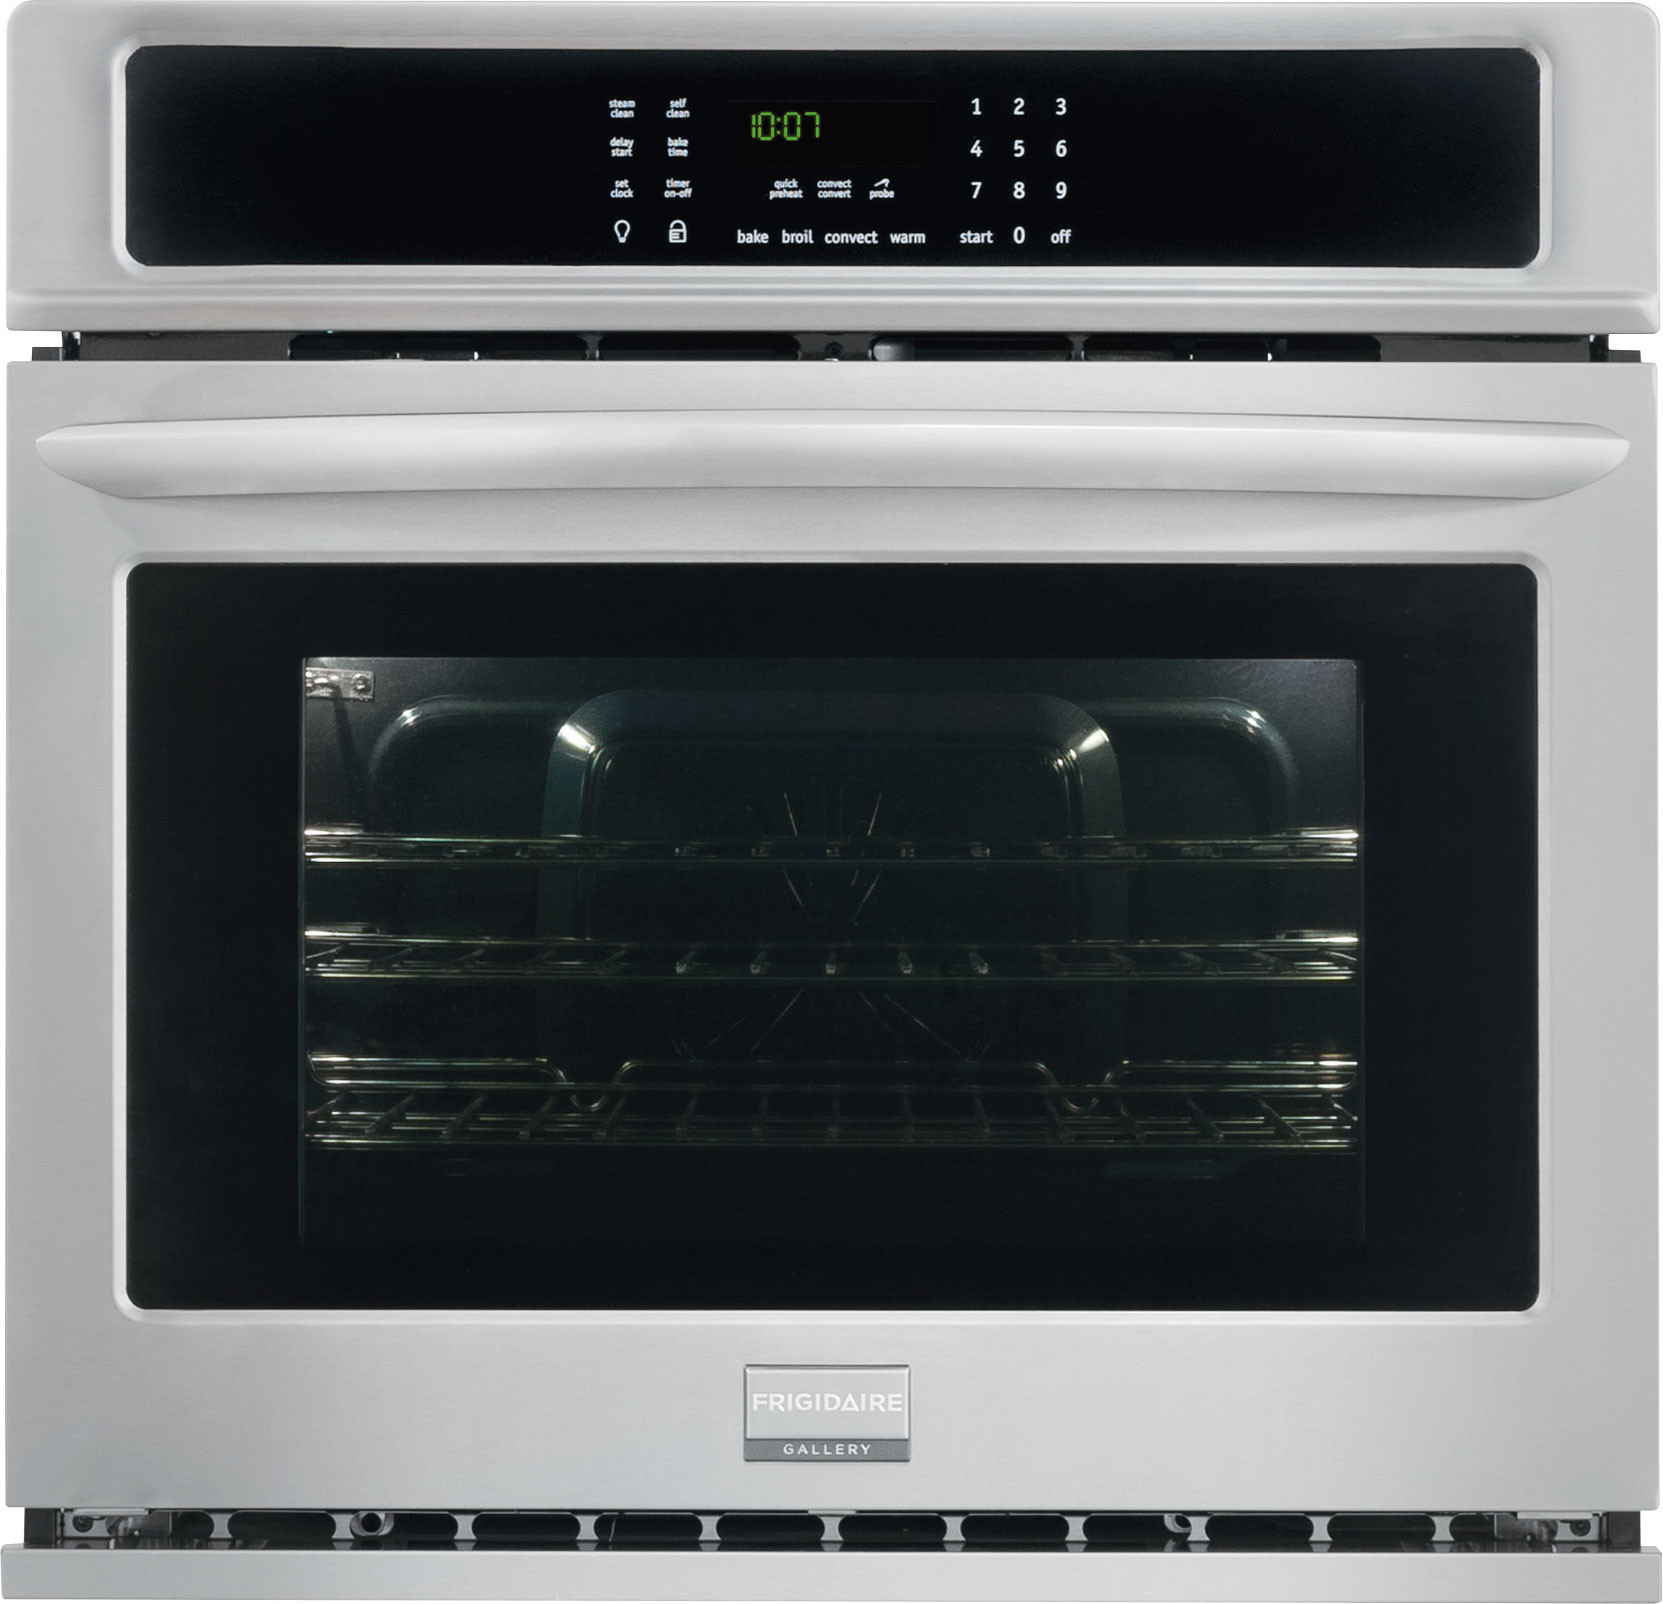 Wall Ovens on black ge, black estate, black lg, black aga, black smeg, black pfaltzgraff, black hp, black whirlpool, black microsoft, black tupperware, black apple, black samsung, black paula deen, black gibson,